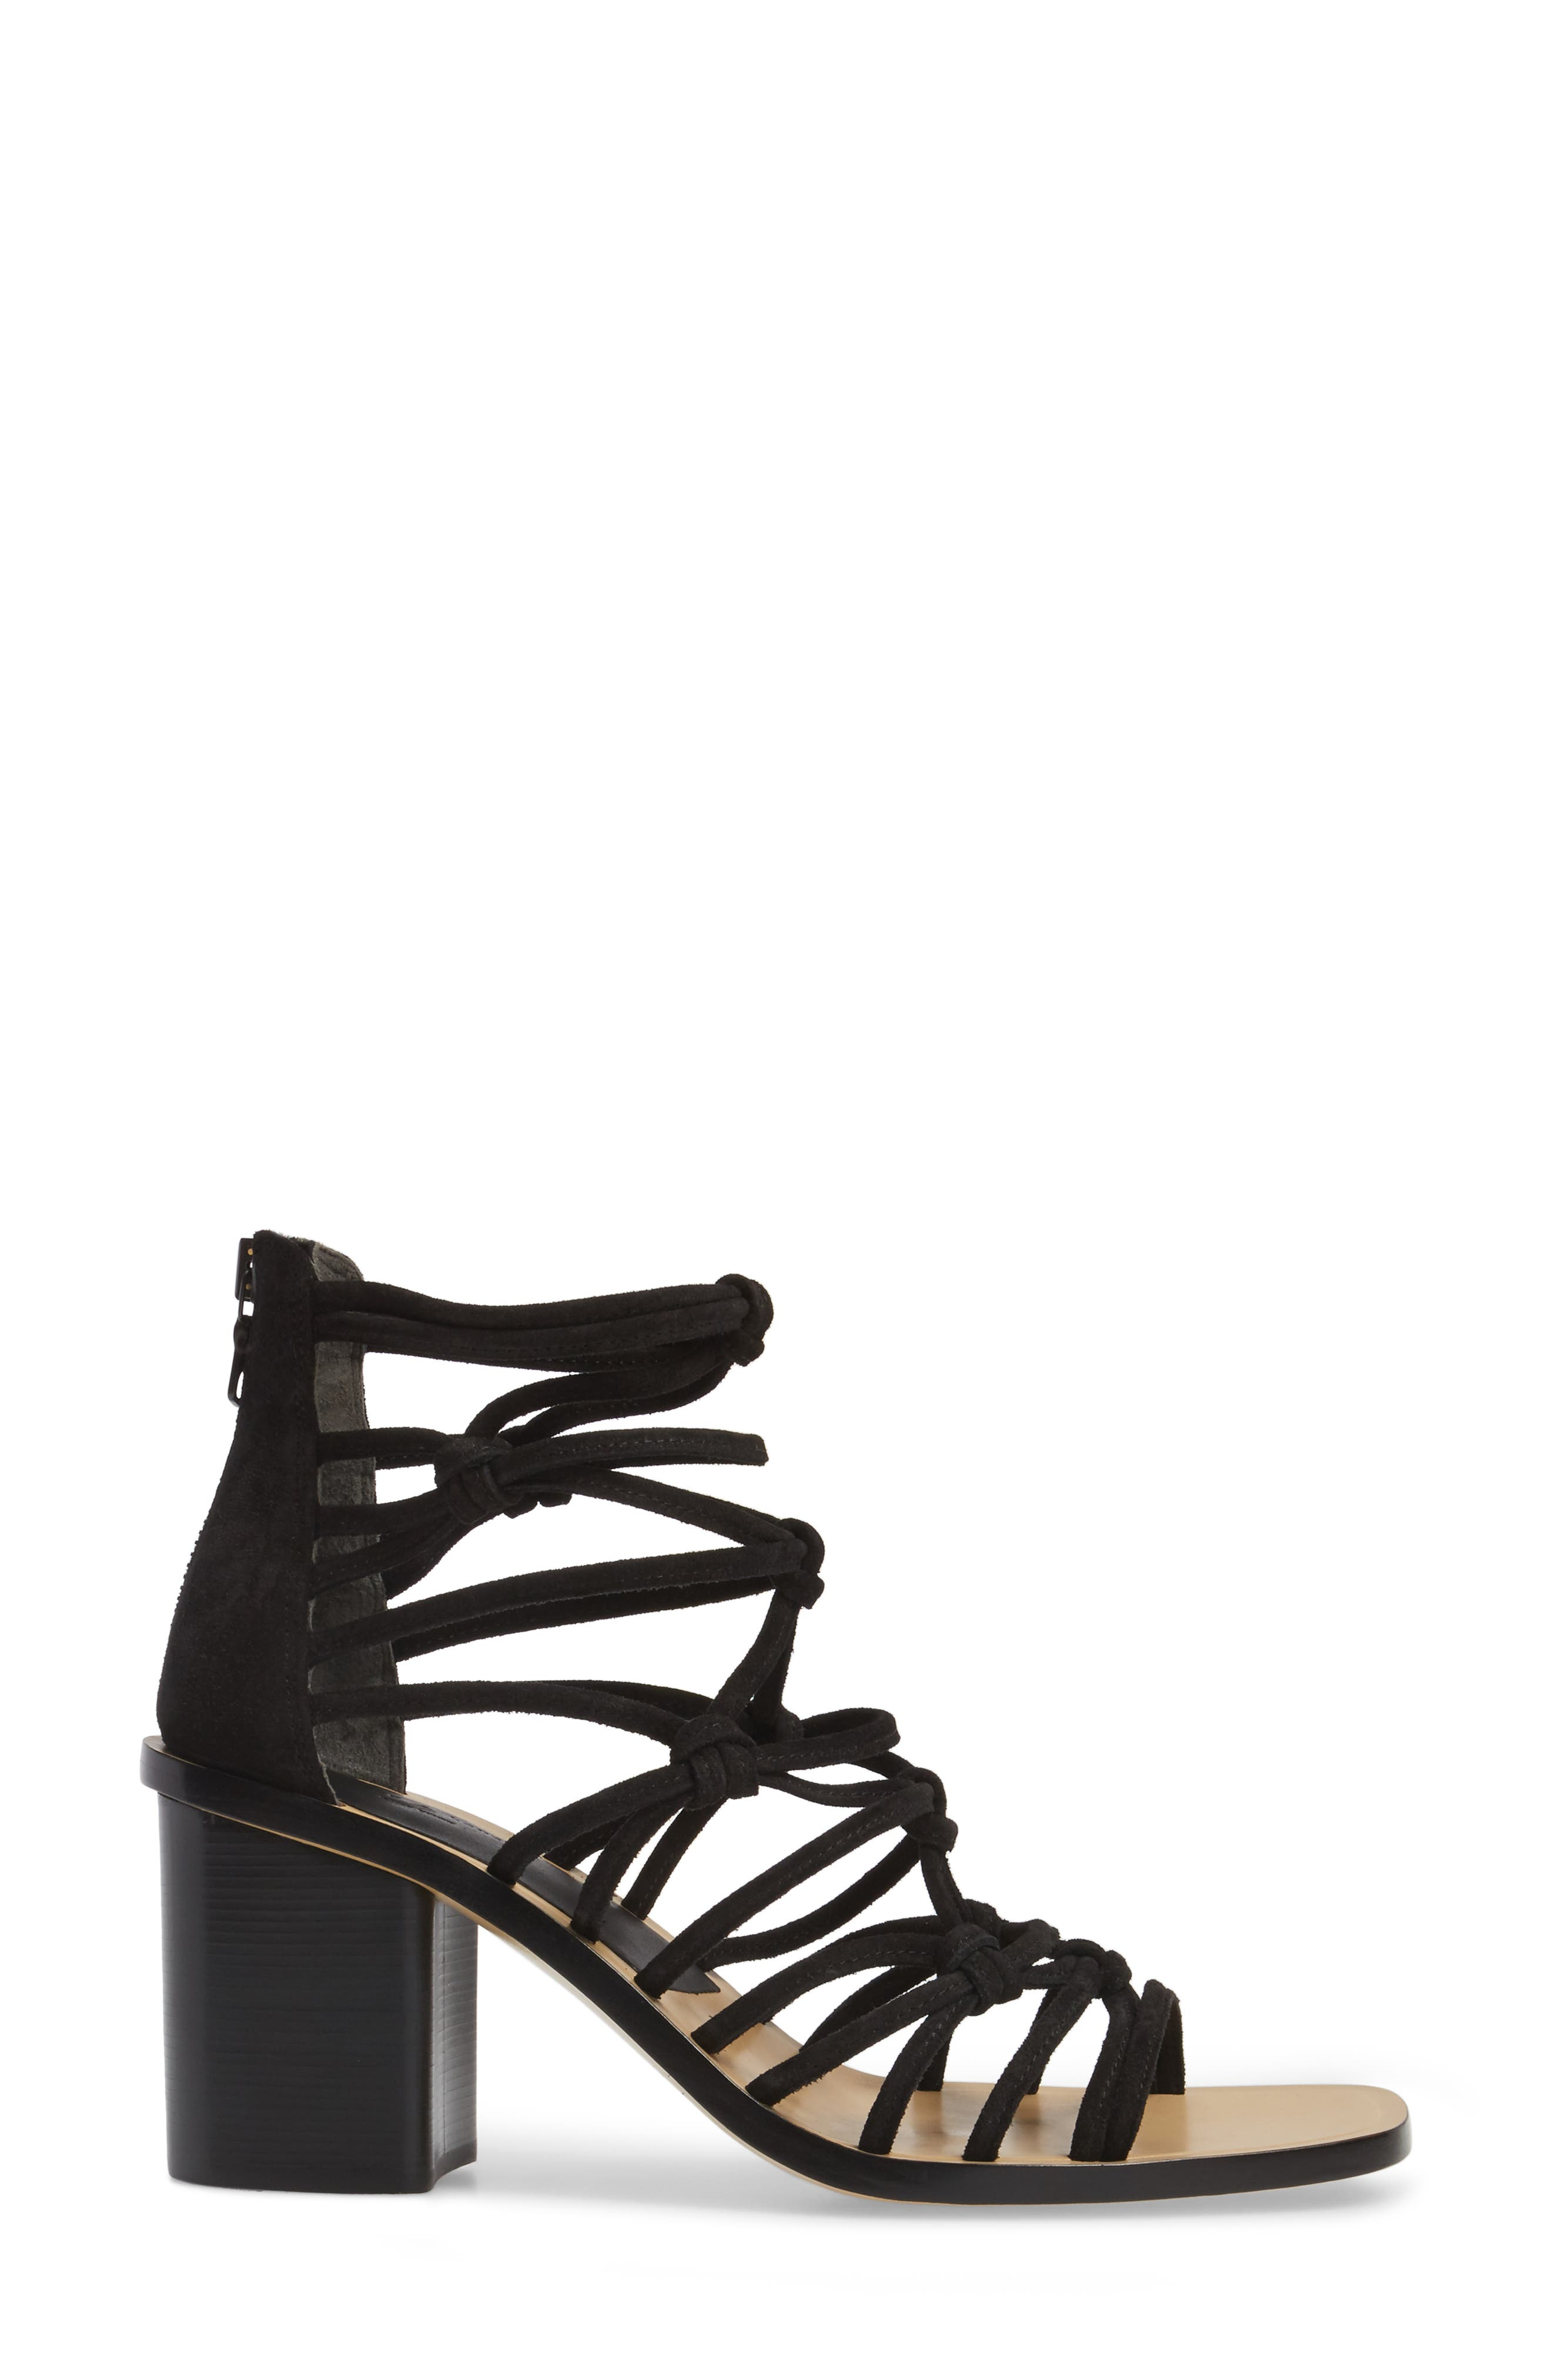 Camille Knotted Strappy Sandal,                             Alternate thumbnail 3, color,                             Black Suede